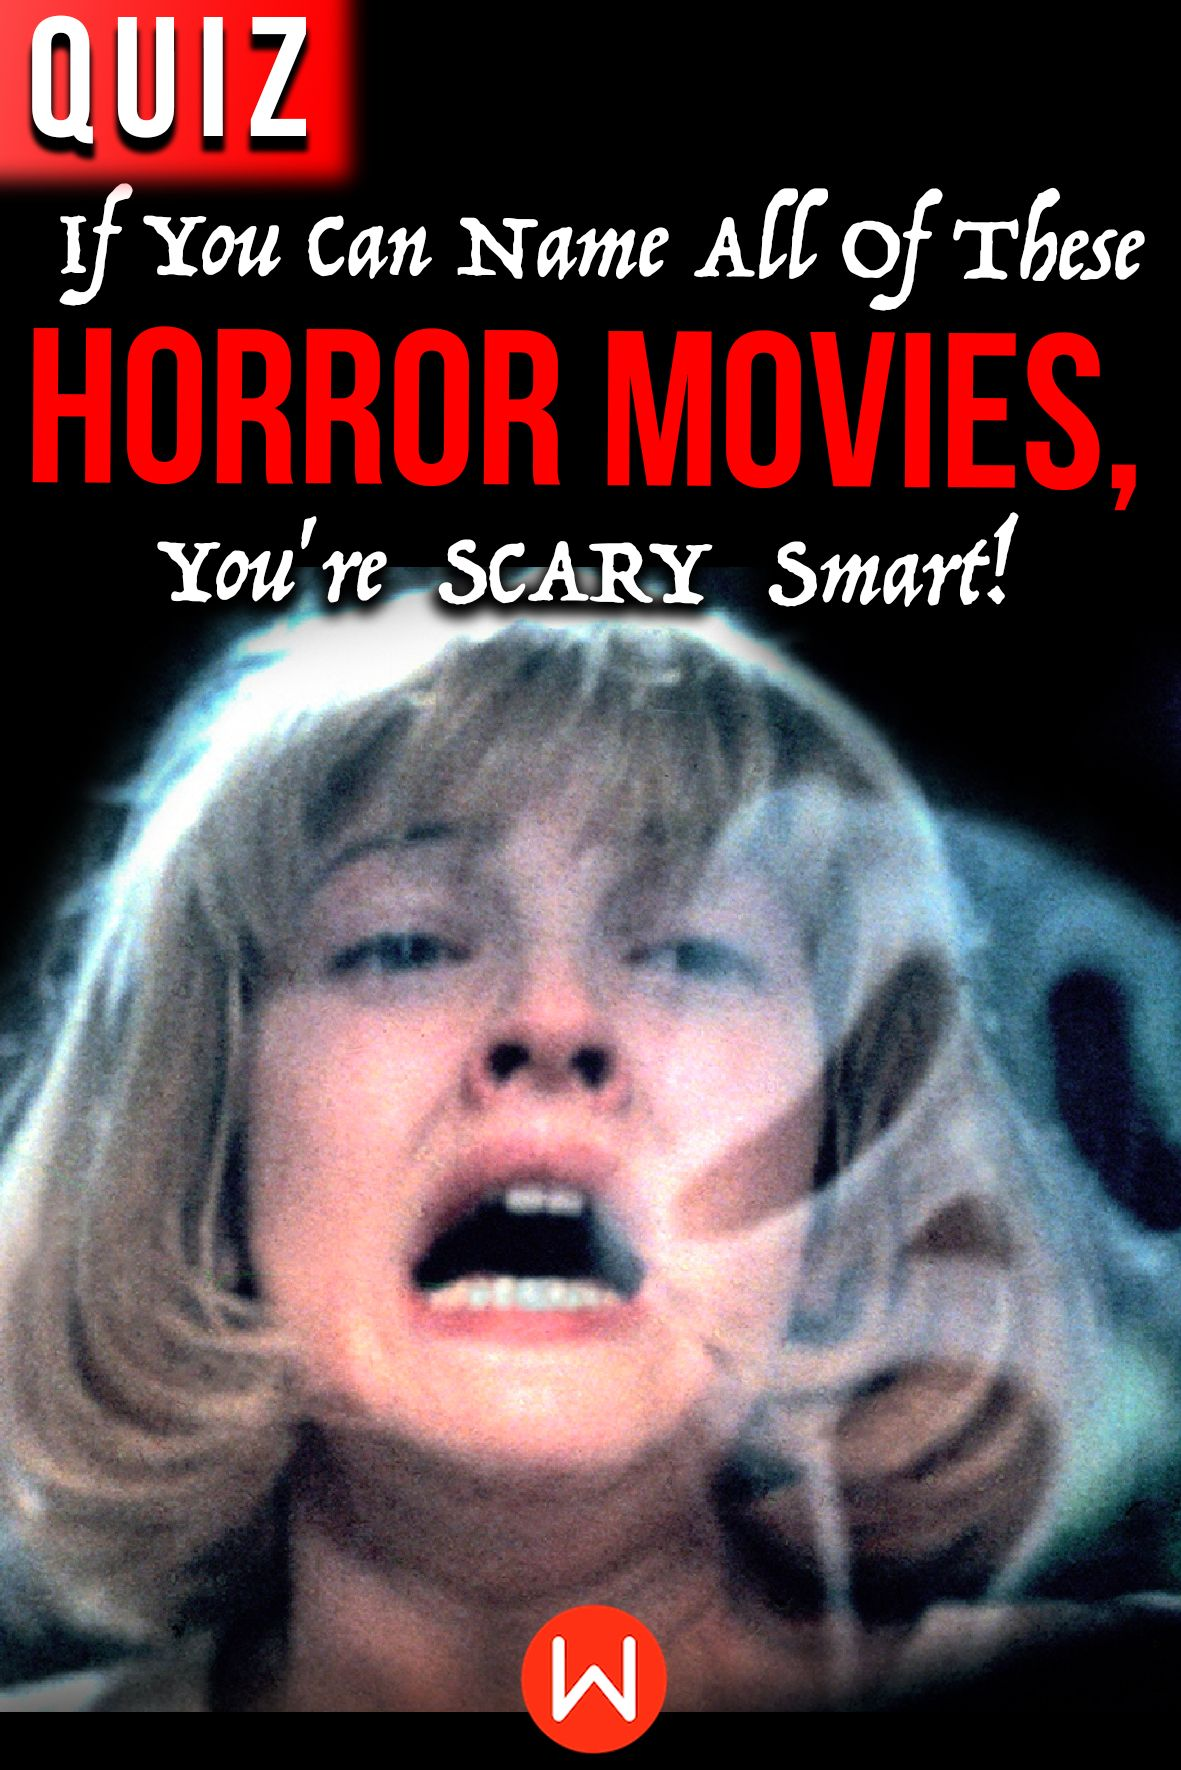 Give This Quiz A Try If You Re Not Scared Are You A Horror Movie Expert Have You Seen All Of The Scariest Horror Film Horror Movies Movie Quizzes Movie Quiz